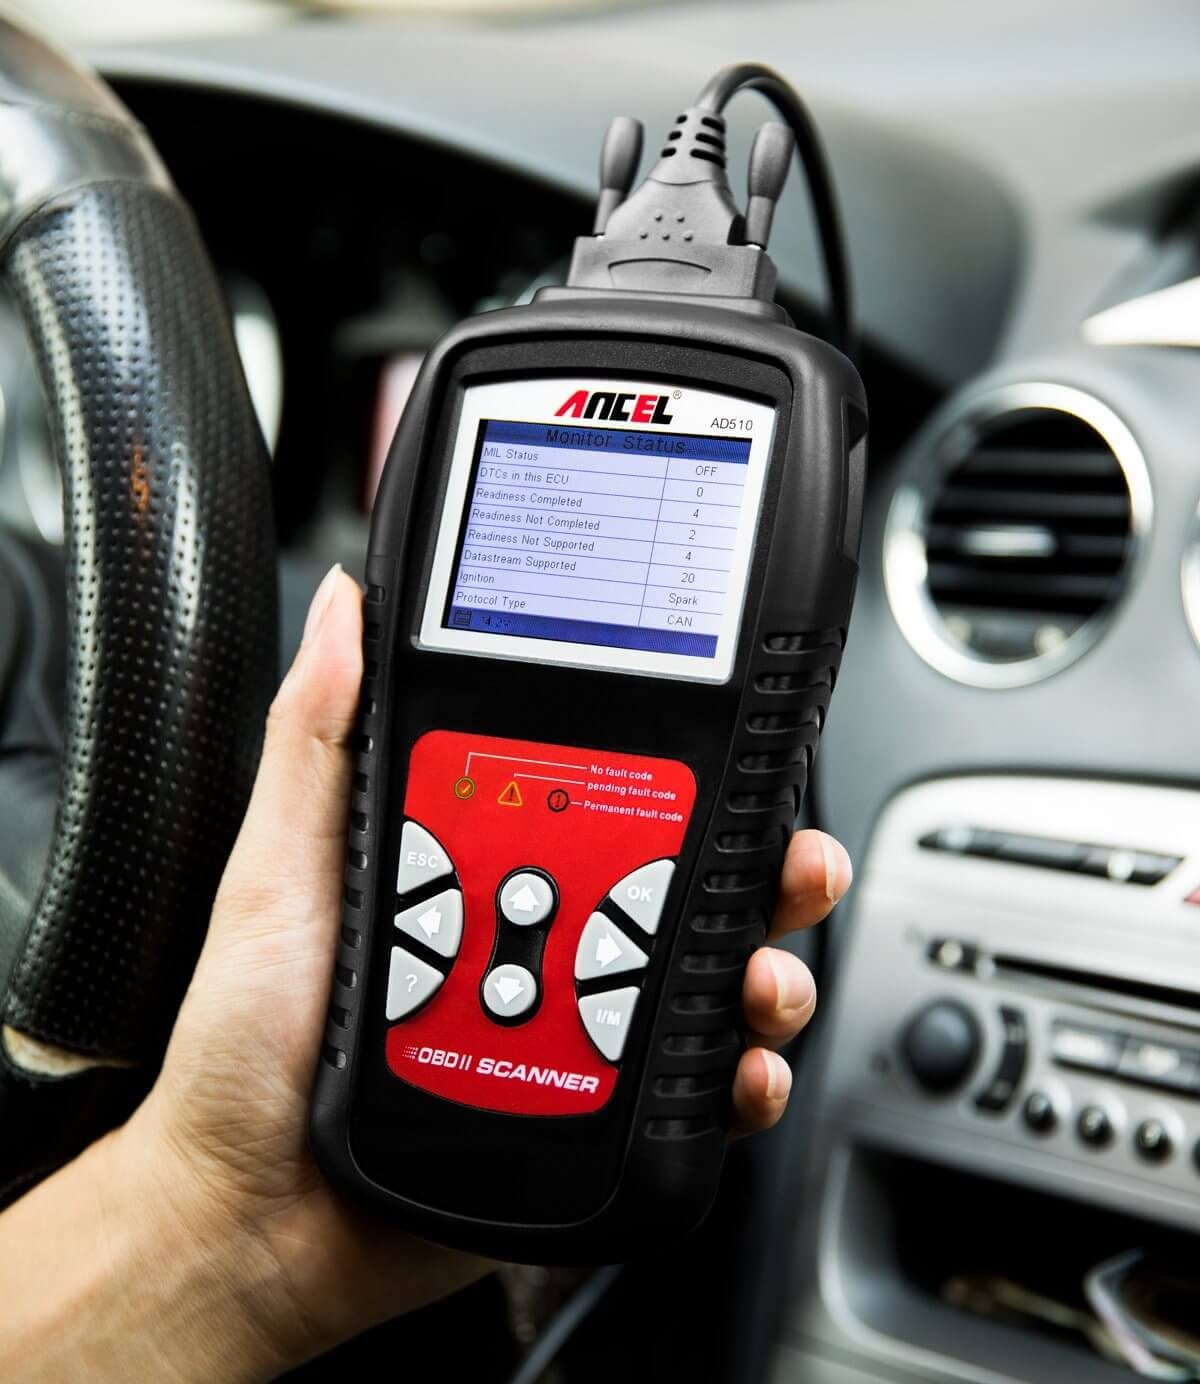 Best-Obdii-Scan-Topdon Top 9 Best OBD2 Scanner Reviews in 2020